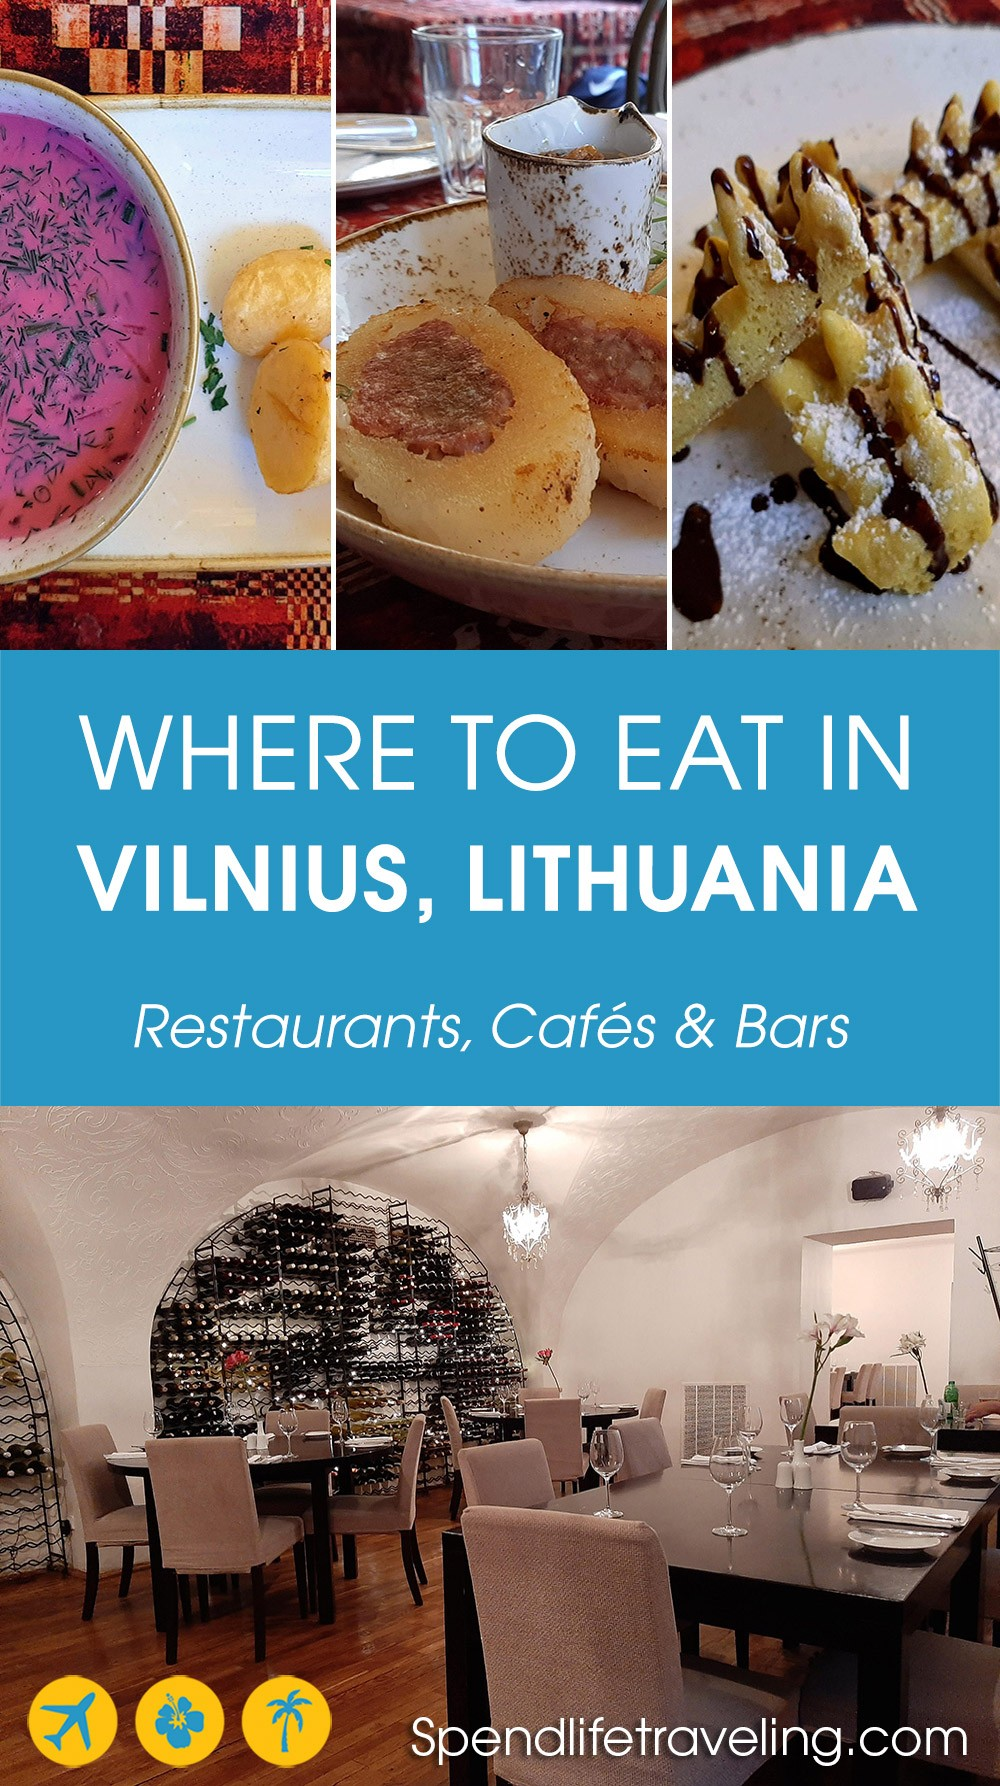 Recommendations for where to eat in Vilnius